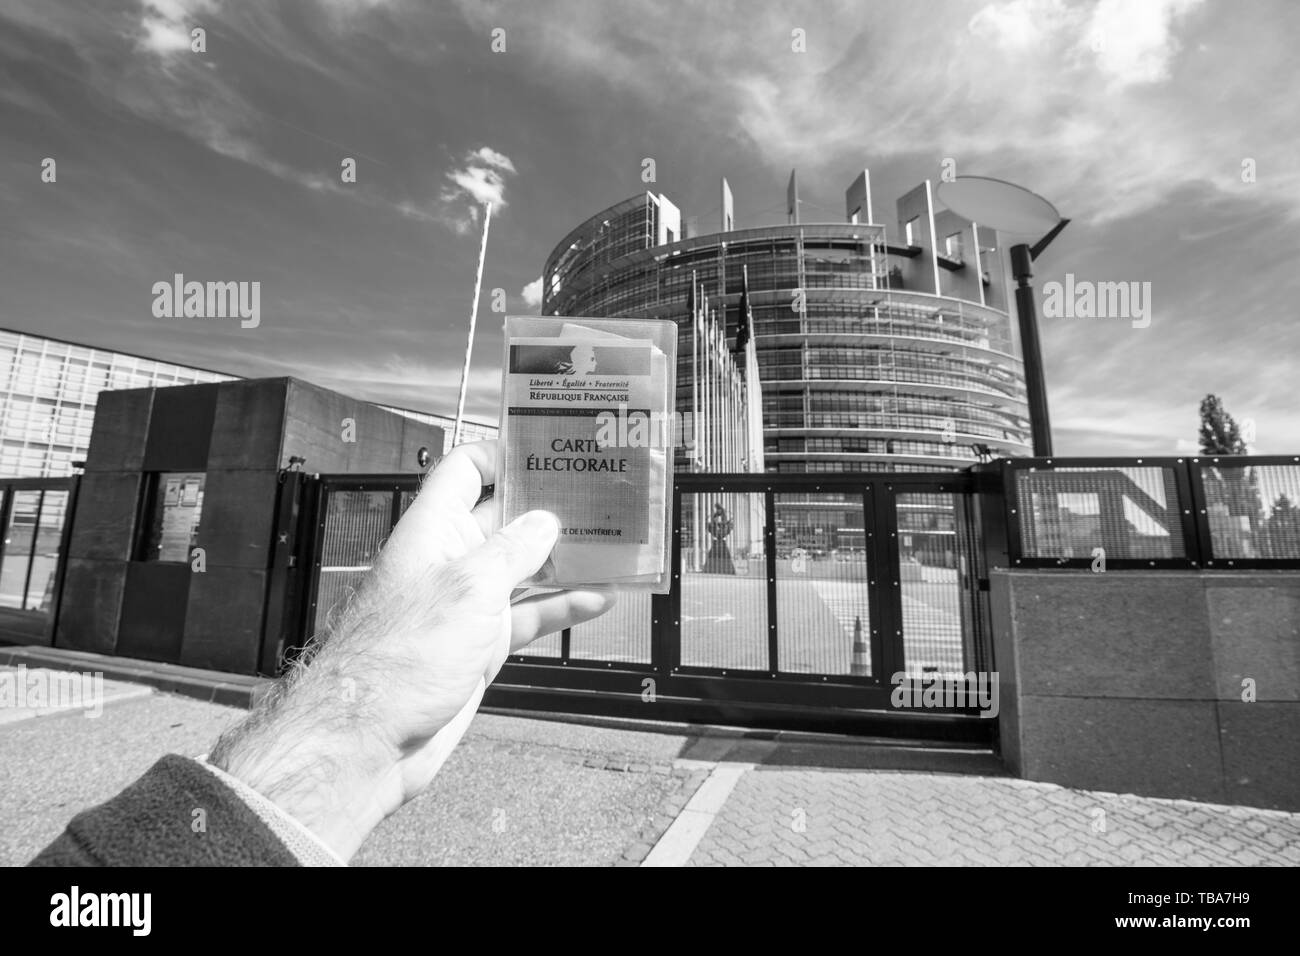 Strasbourg, France - May 26, 2019: man hand holding Voter's car French Carte Electorale at the entrance of European Parliament headquarter building with all flags on the 2019 European Parliament election day - black and white - Stock Image